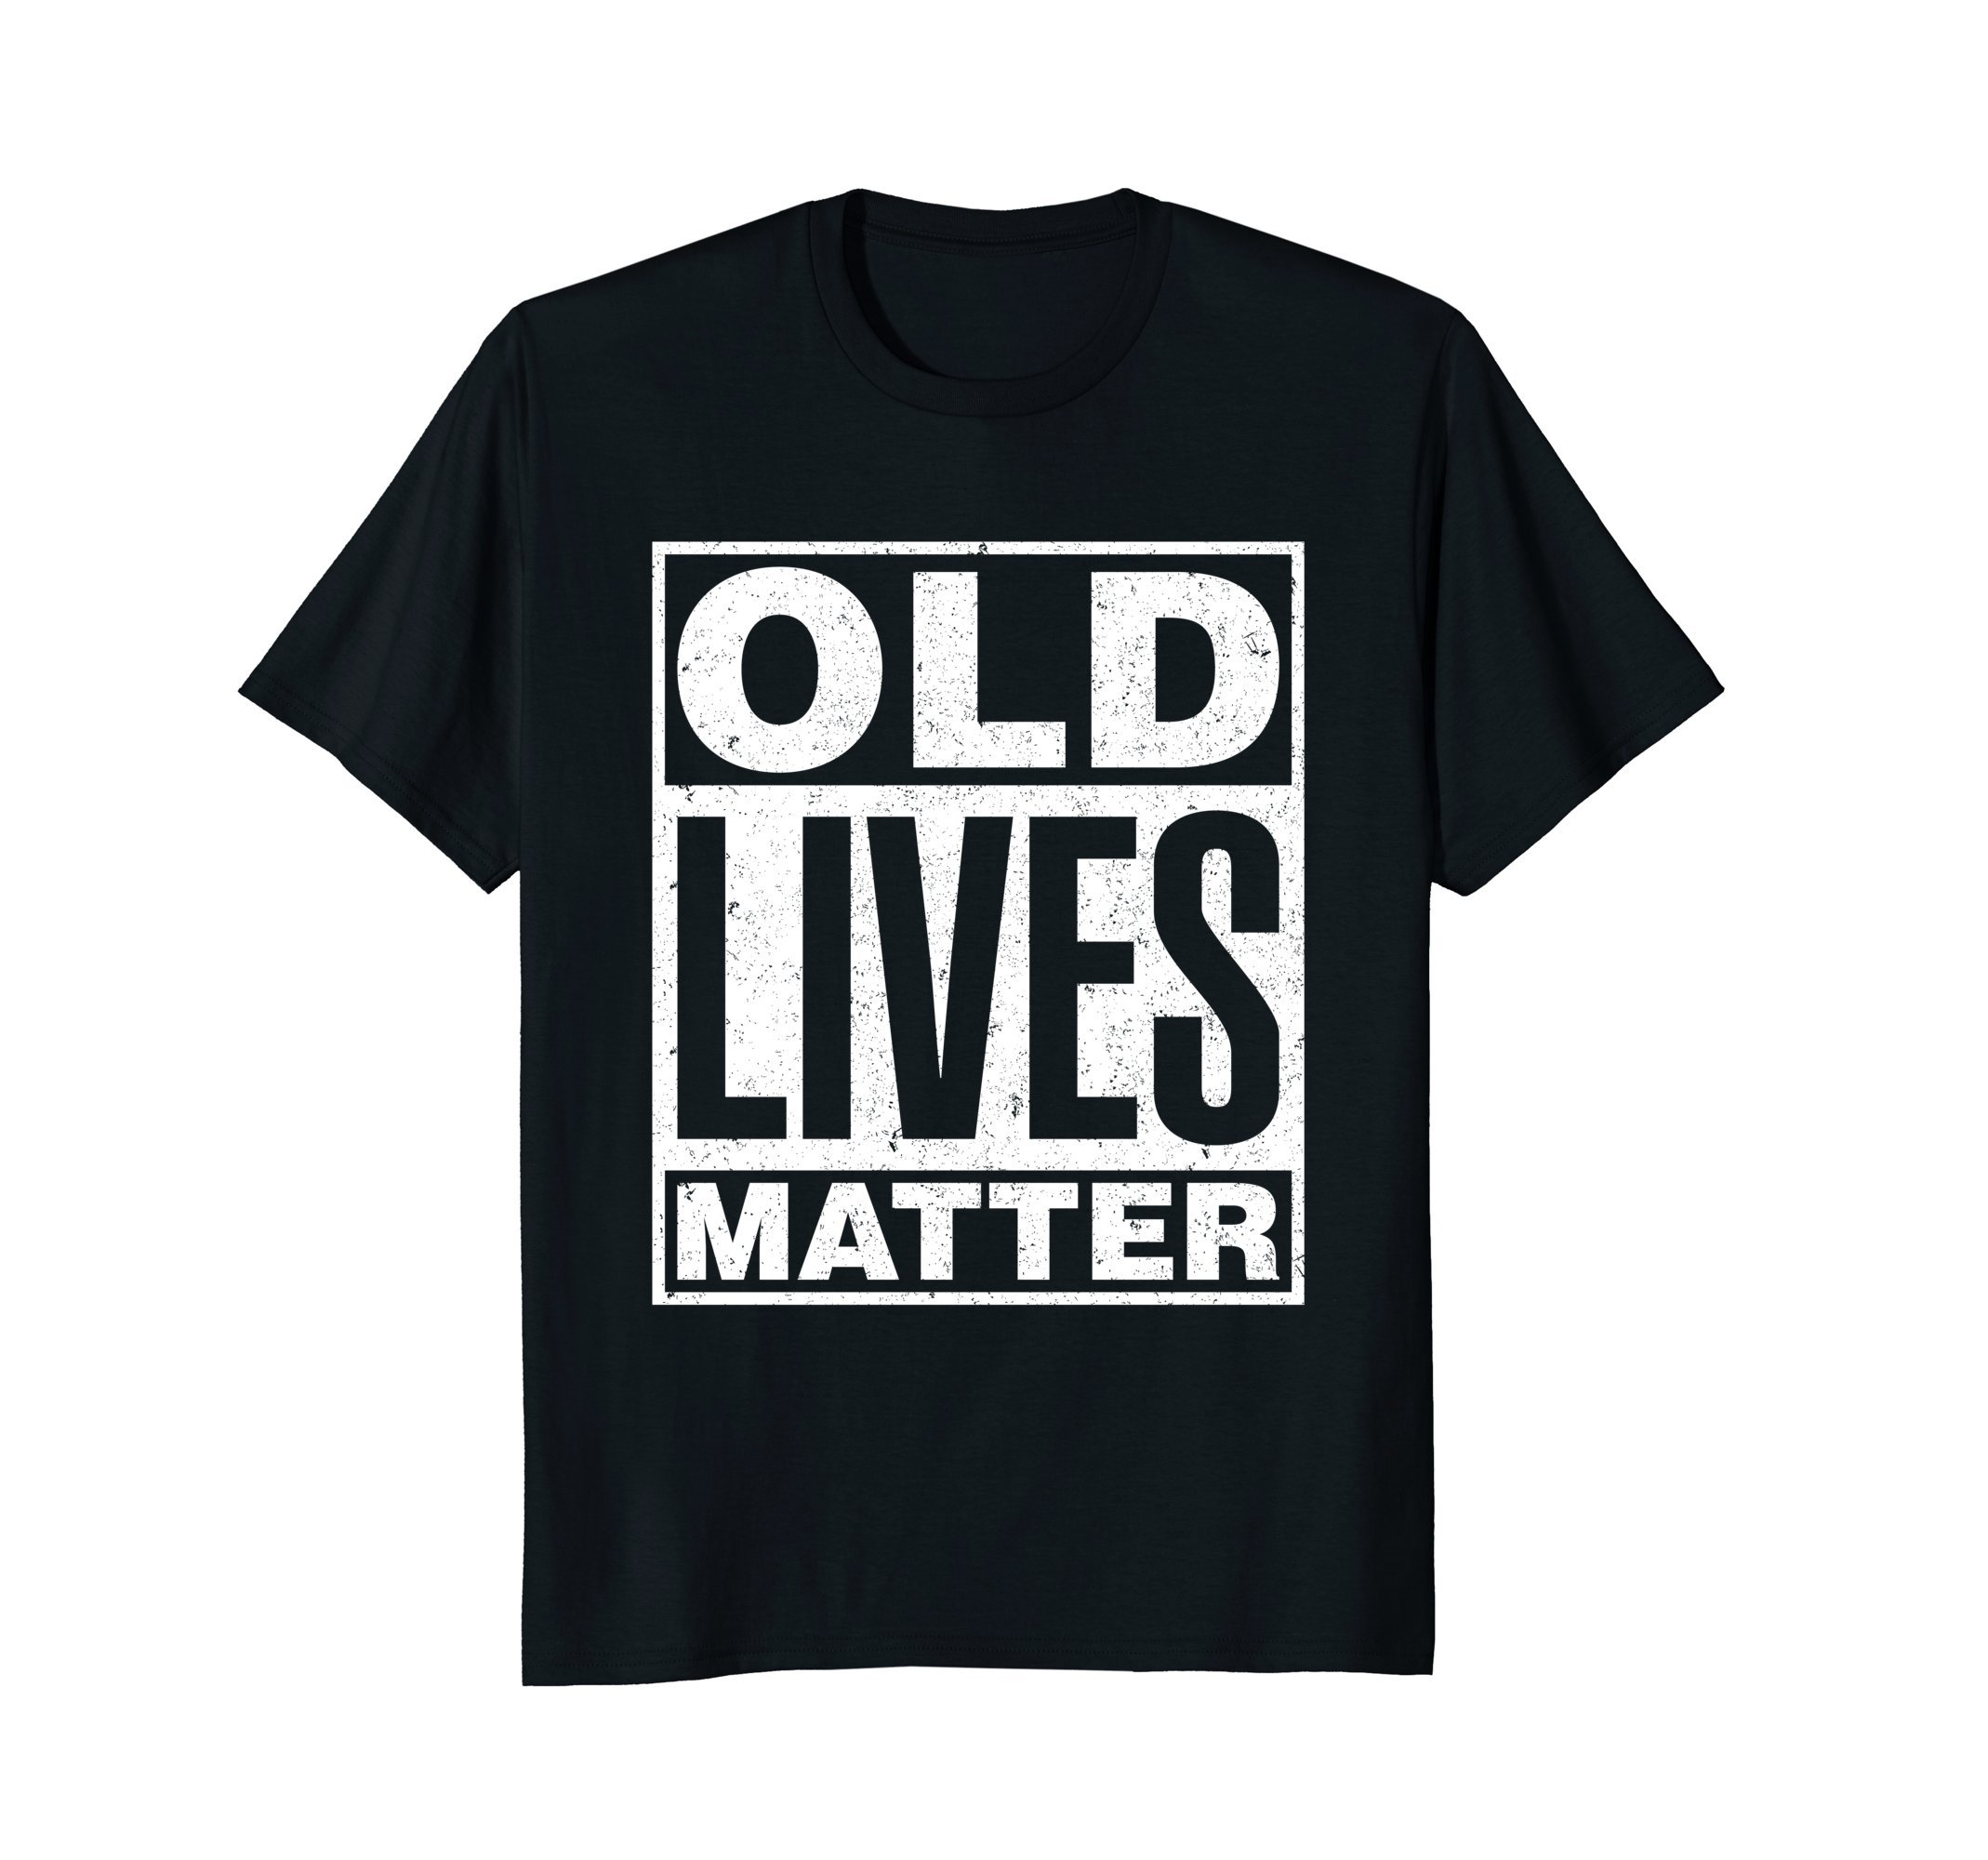 Old Lives Matter Funny Birthday Gift Shirt For Men, Women by Old Lives Matter Gift T Shirts (Image #1)